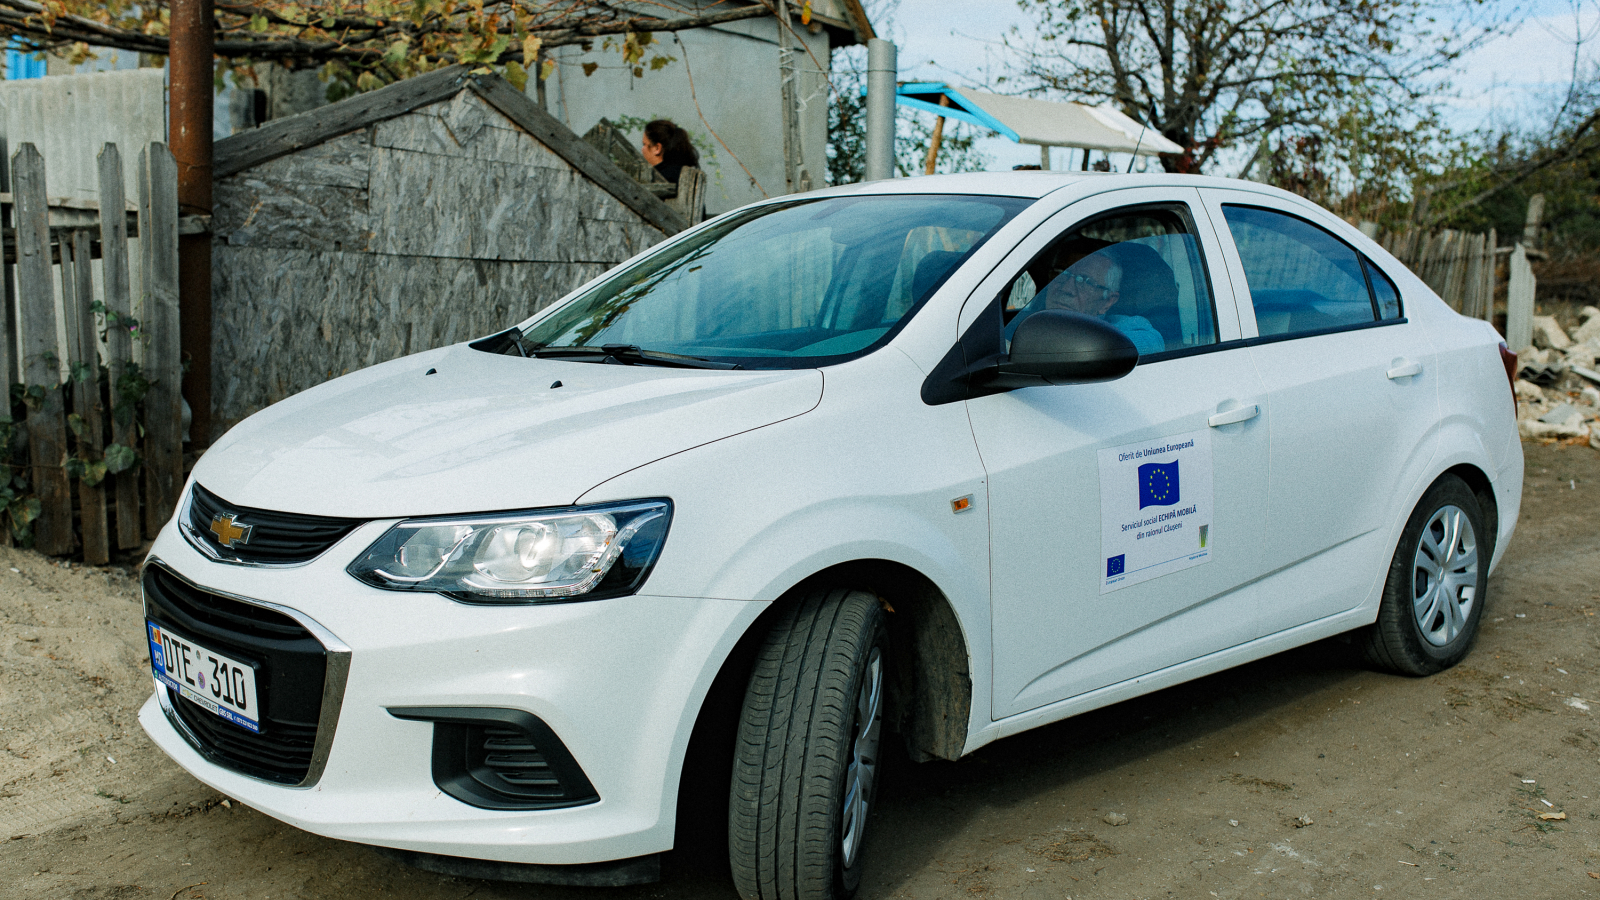 EU provided five cars for mobile teams on both banks of the Dniester